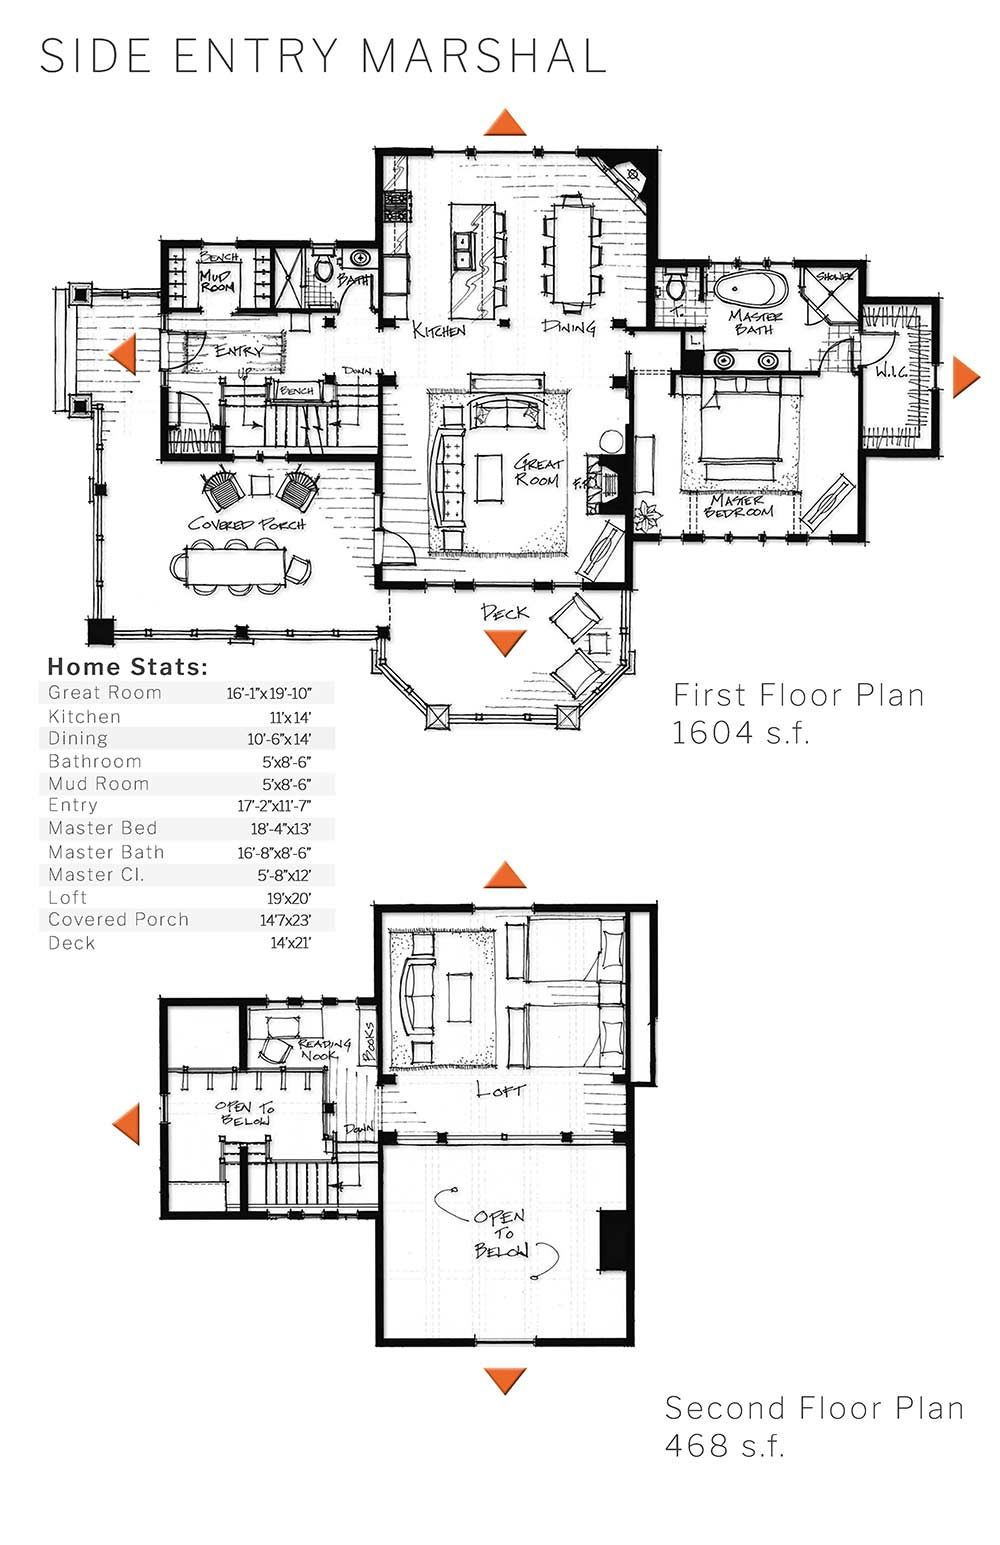 Timber Home Plan For Our Side Entry Marshal Design House Plans Timber Frame Homes Lake House Plans